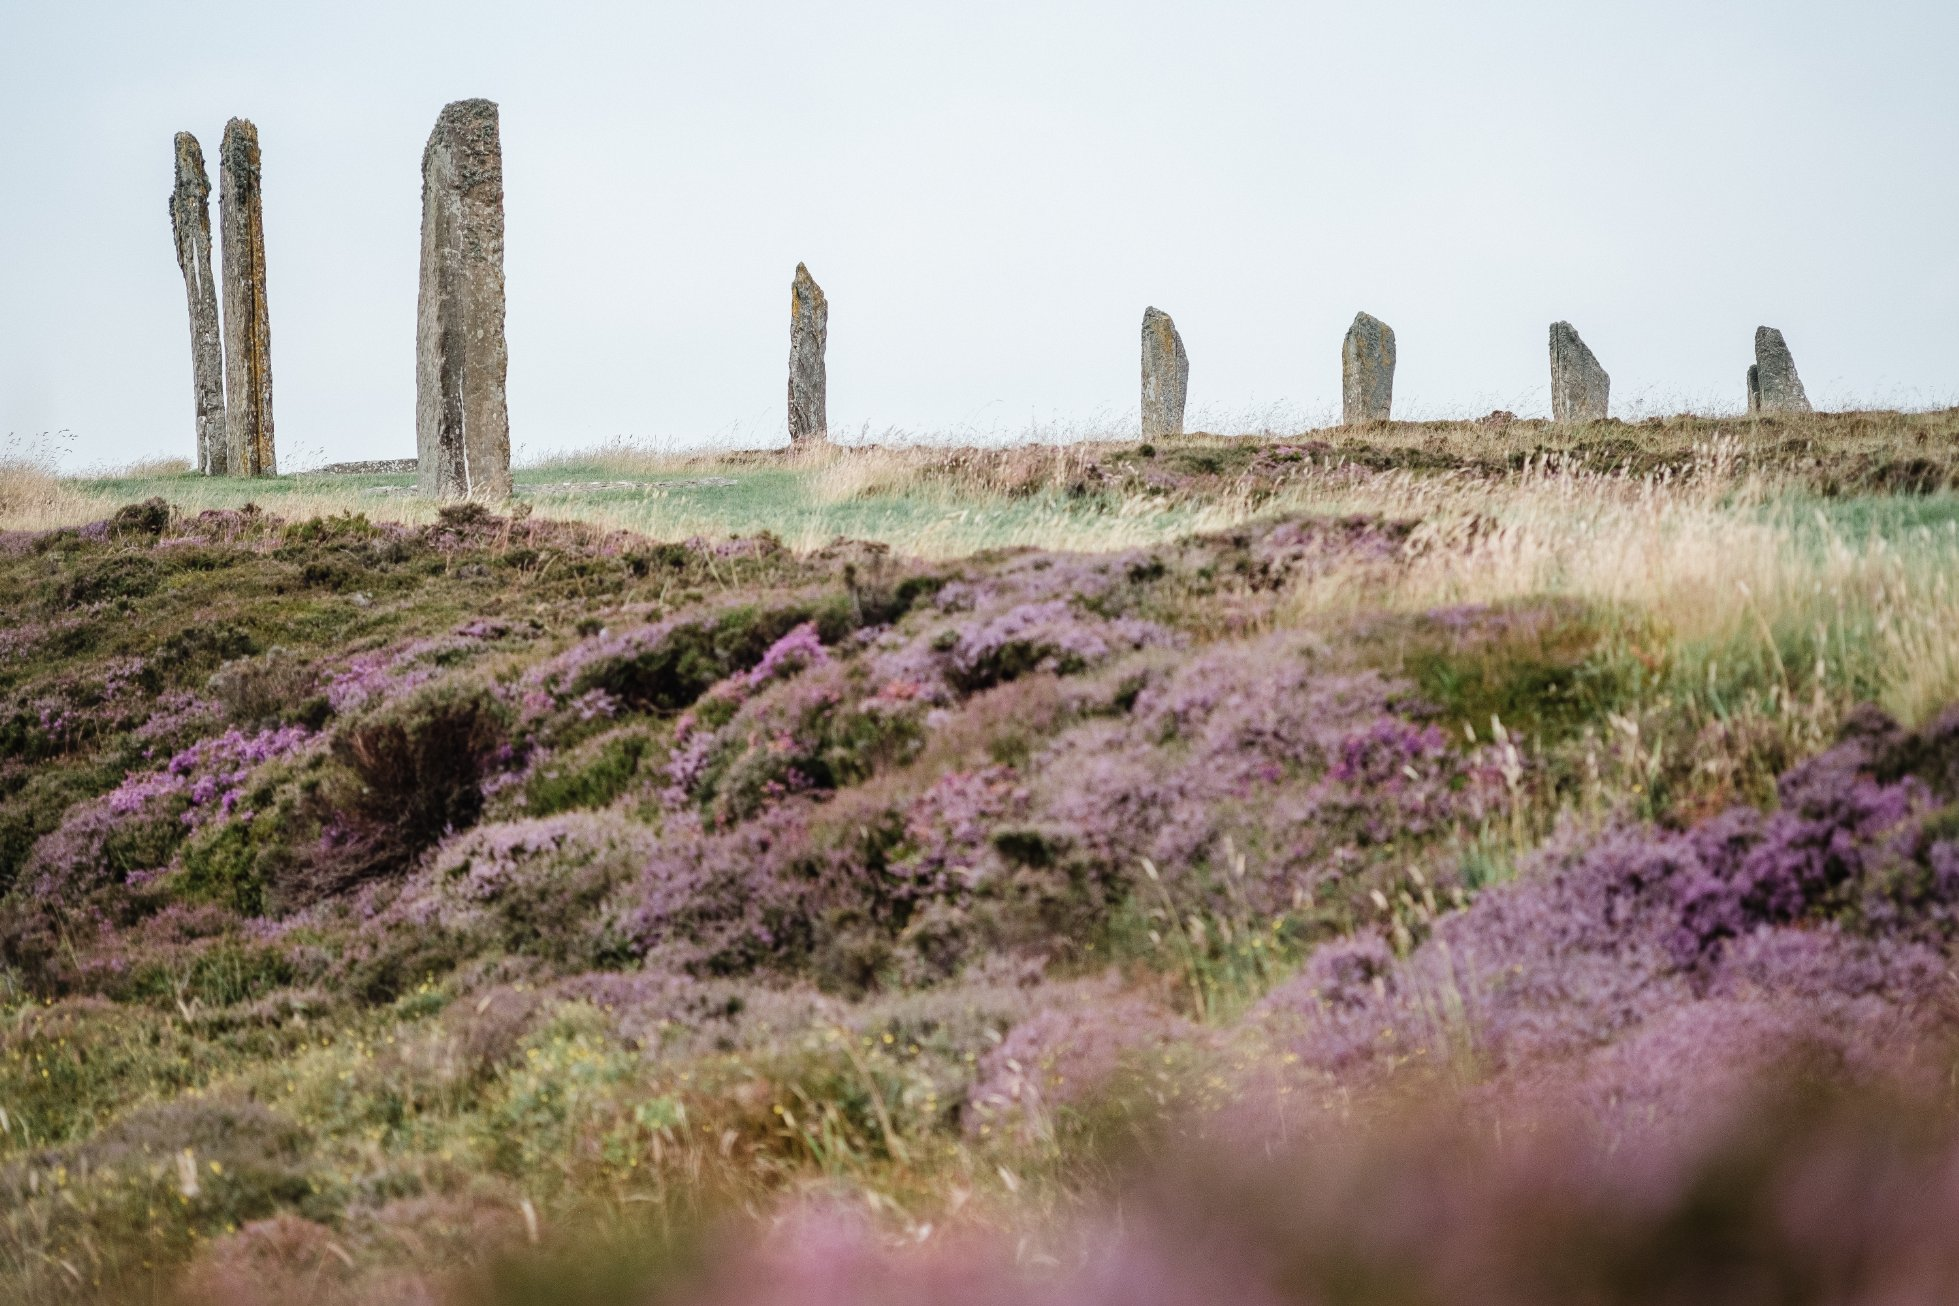 The Ring of Brodgar, Orkney - image by Sveta Damiani